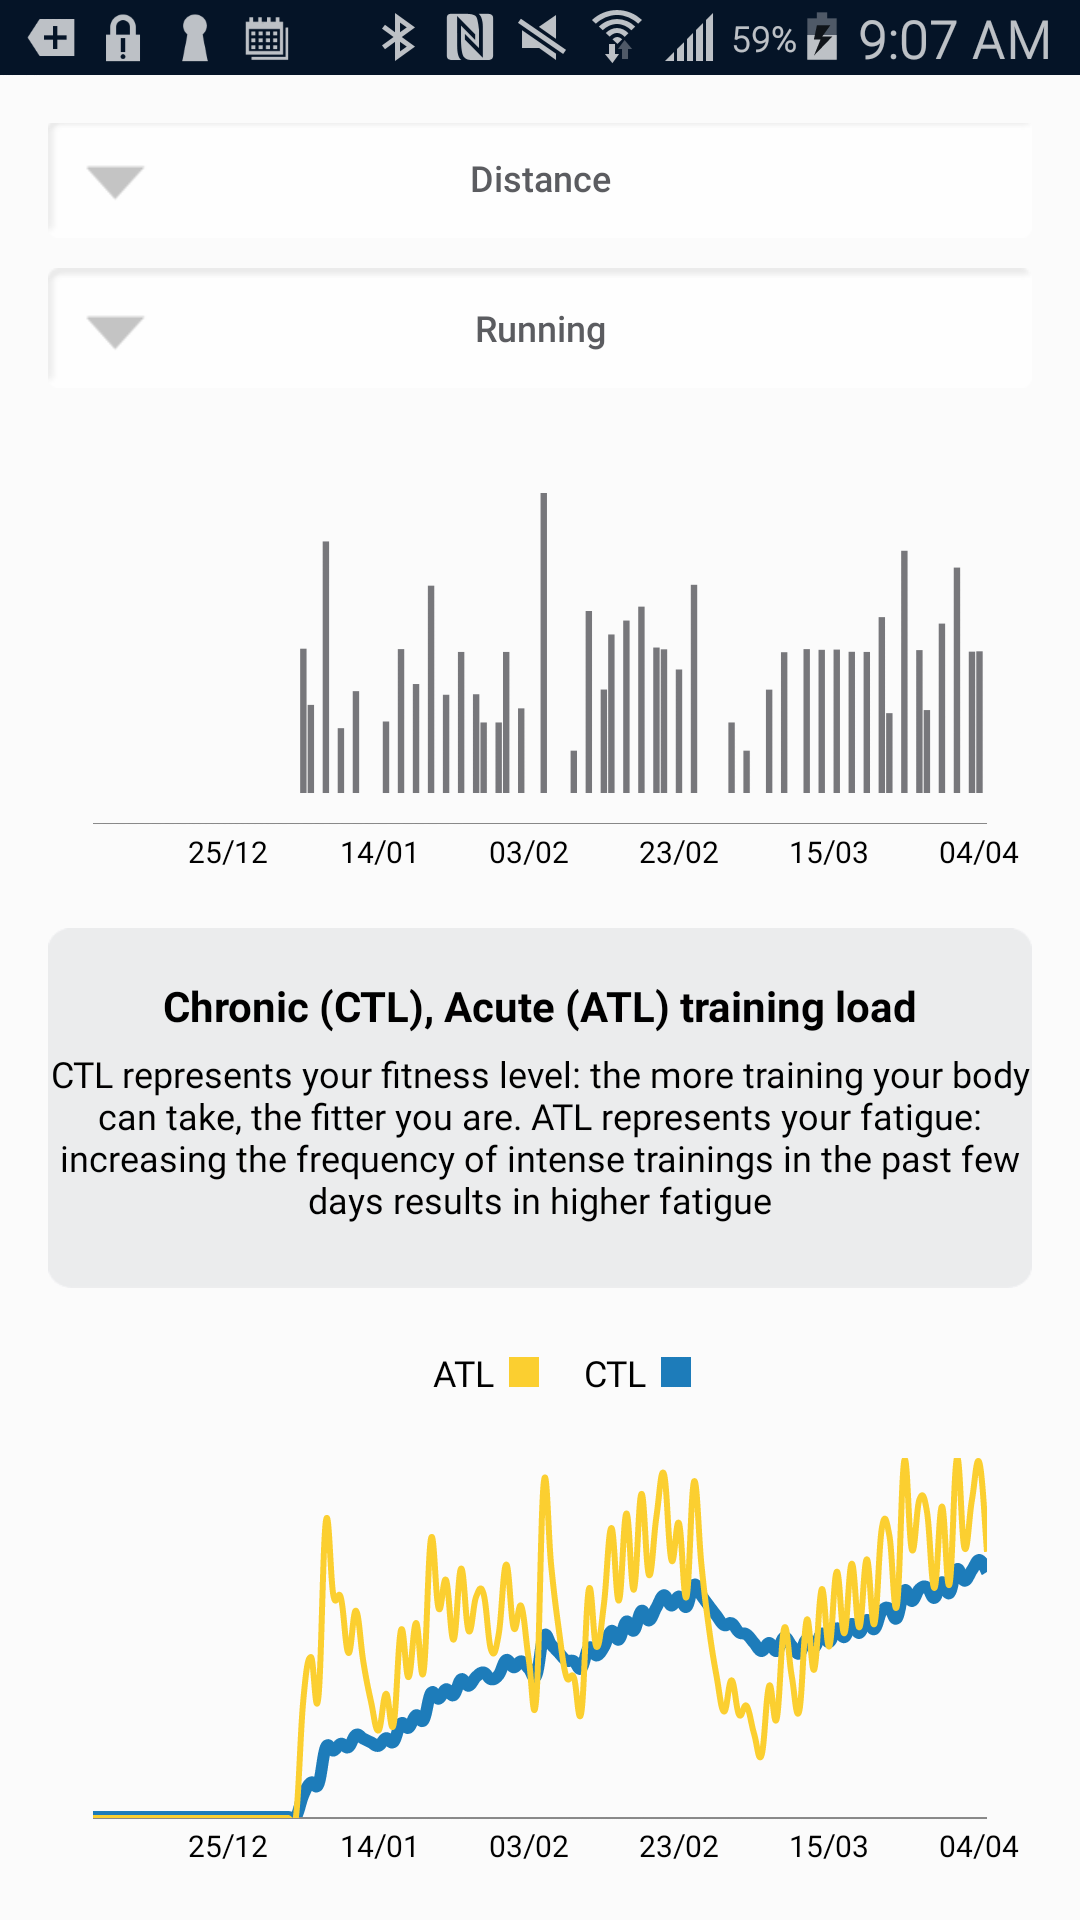 Training load analysis in HRV4Training & HRV4Training Coach